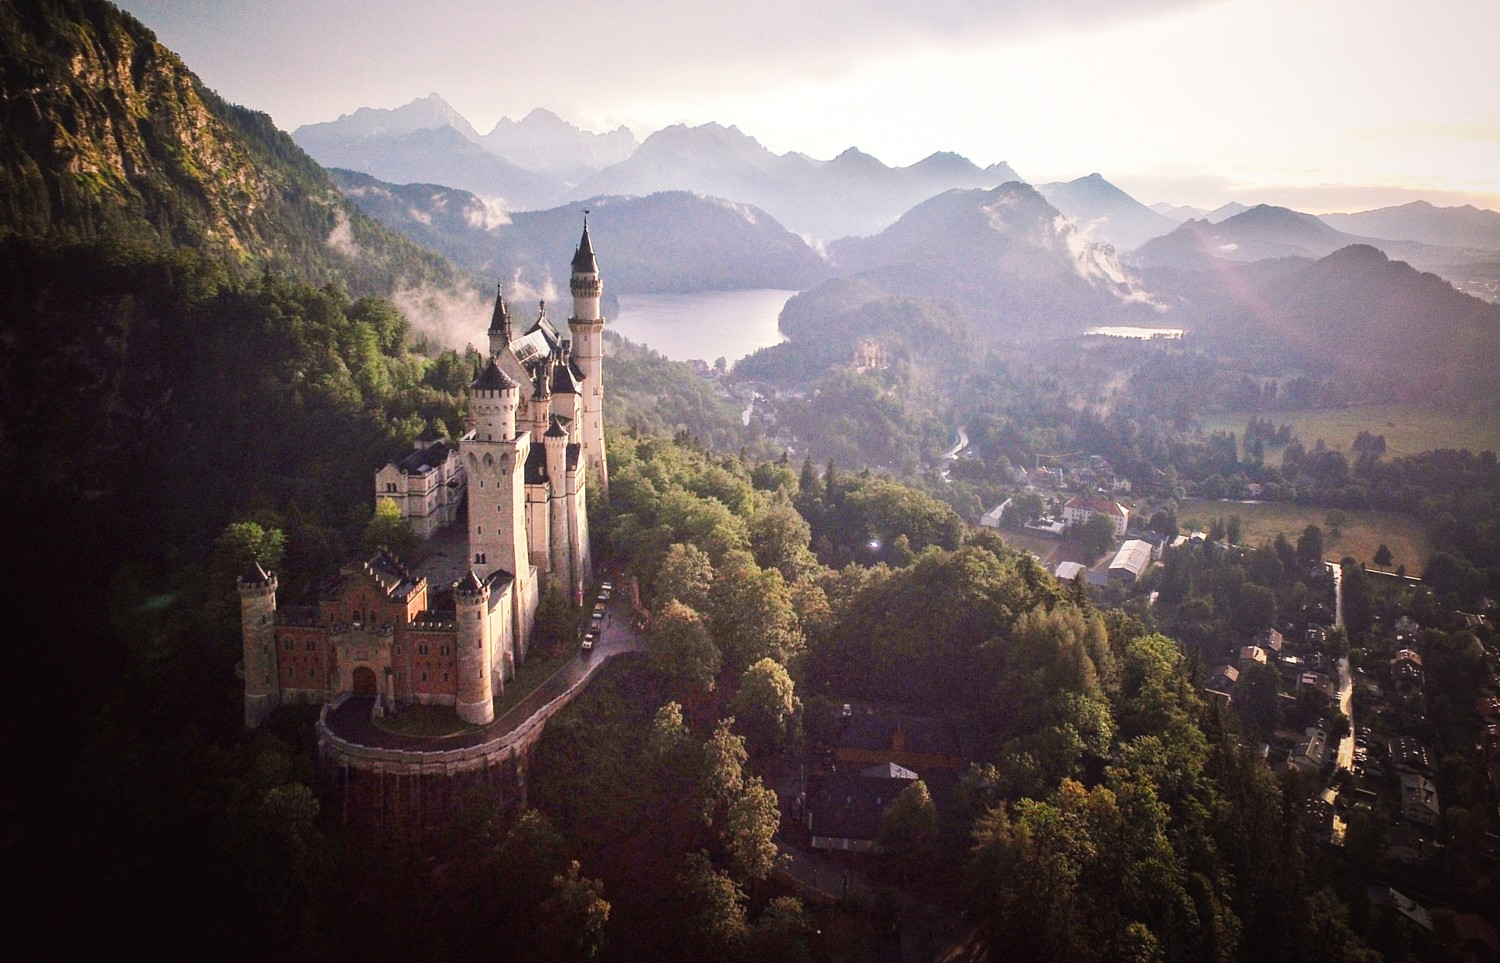 The Top 10 Drone Photos Ever Shared on 500px